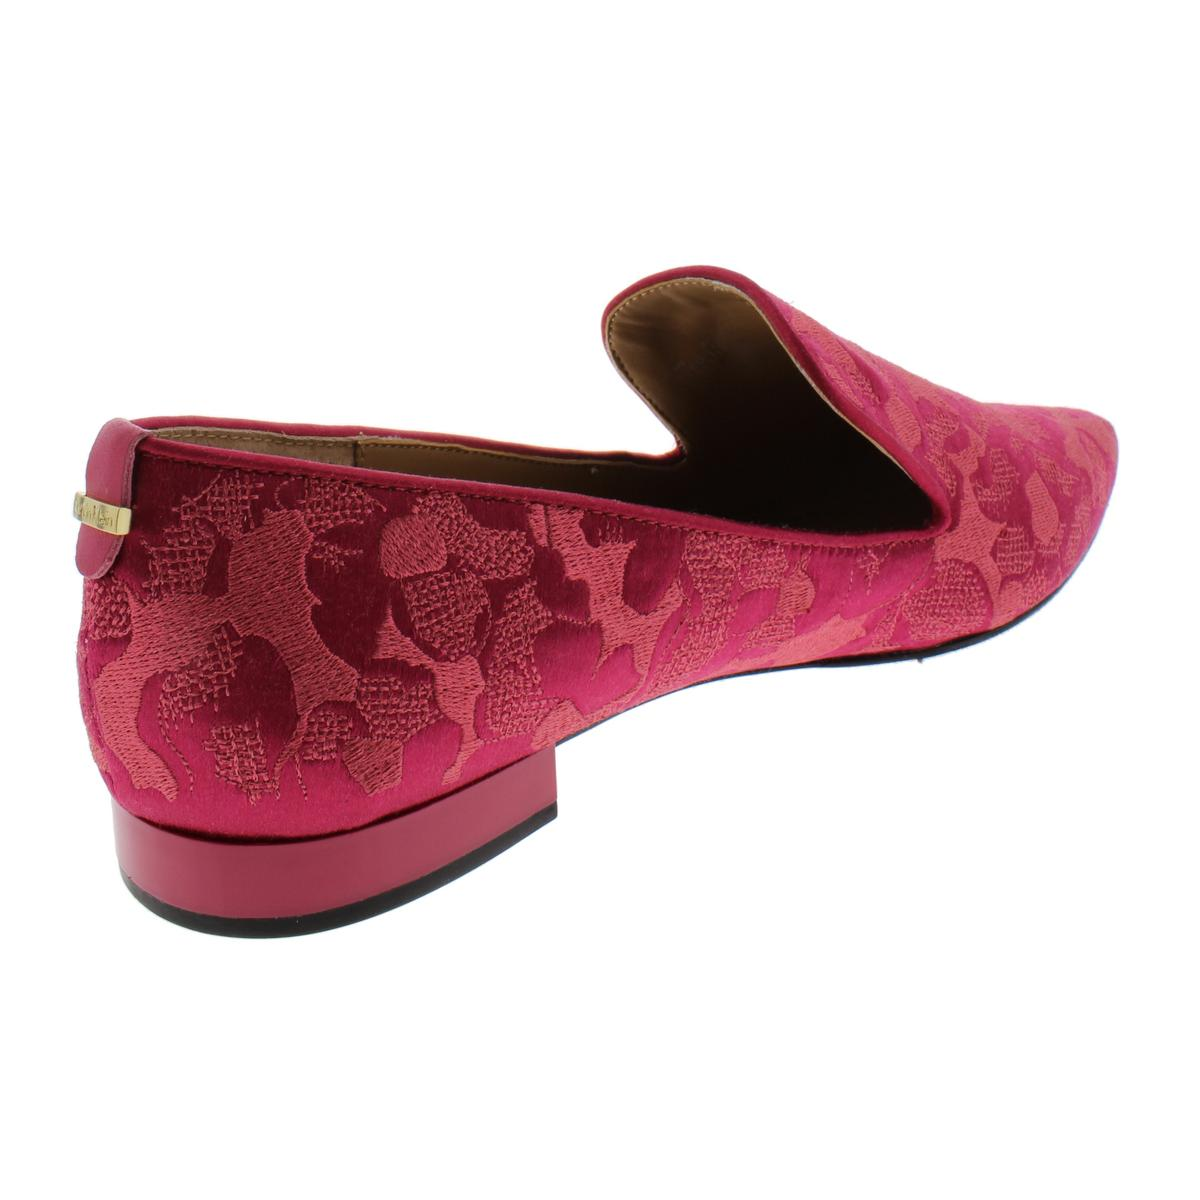 Calvin-Klein-Elin-Women-039-s-Satin-Embroidered-Floral-Print-Smoking-Loafer-Shoes thumbnail 10